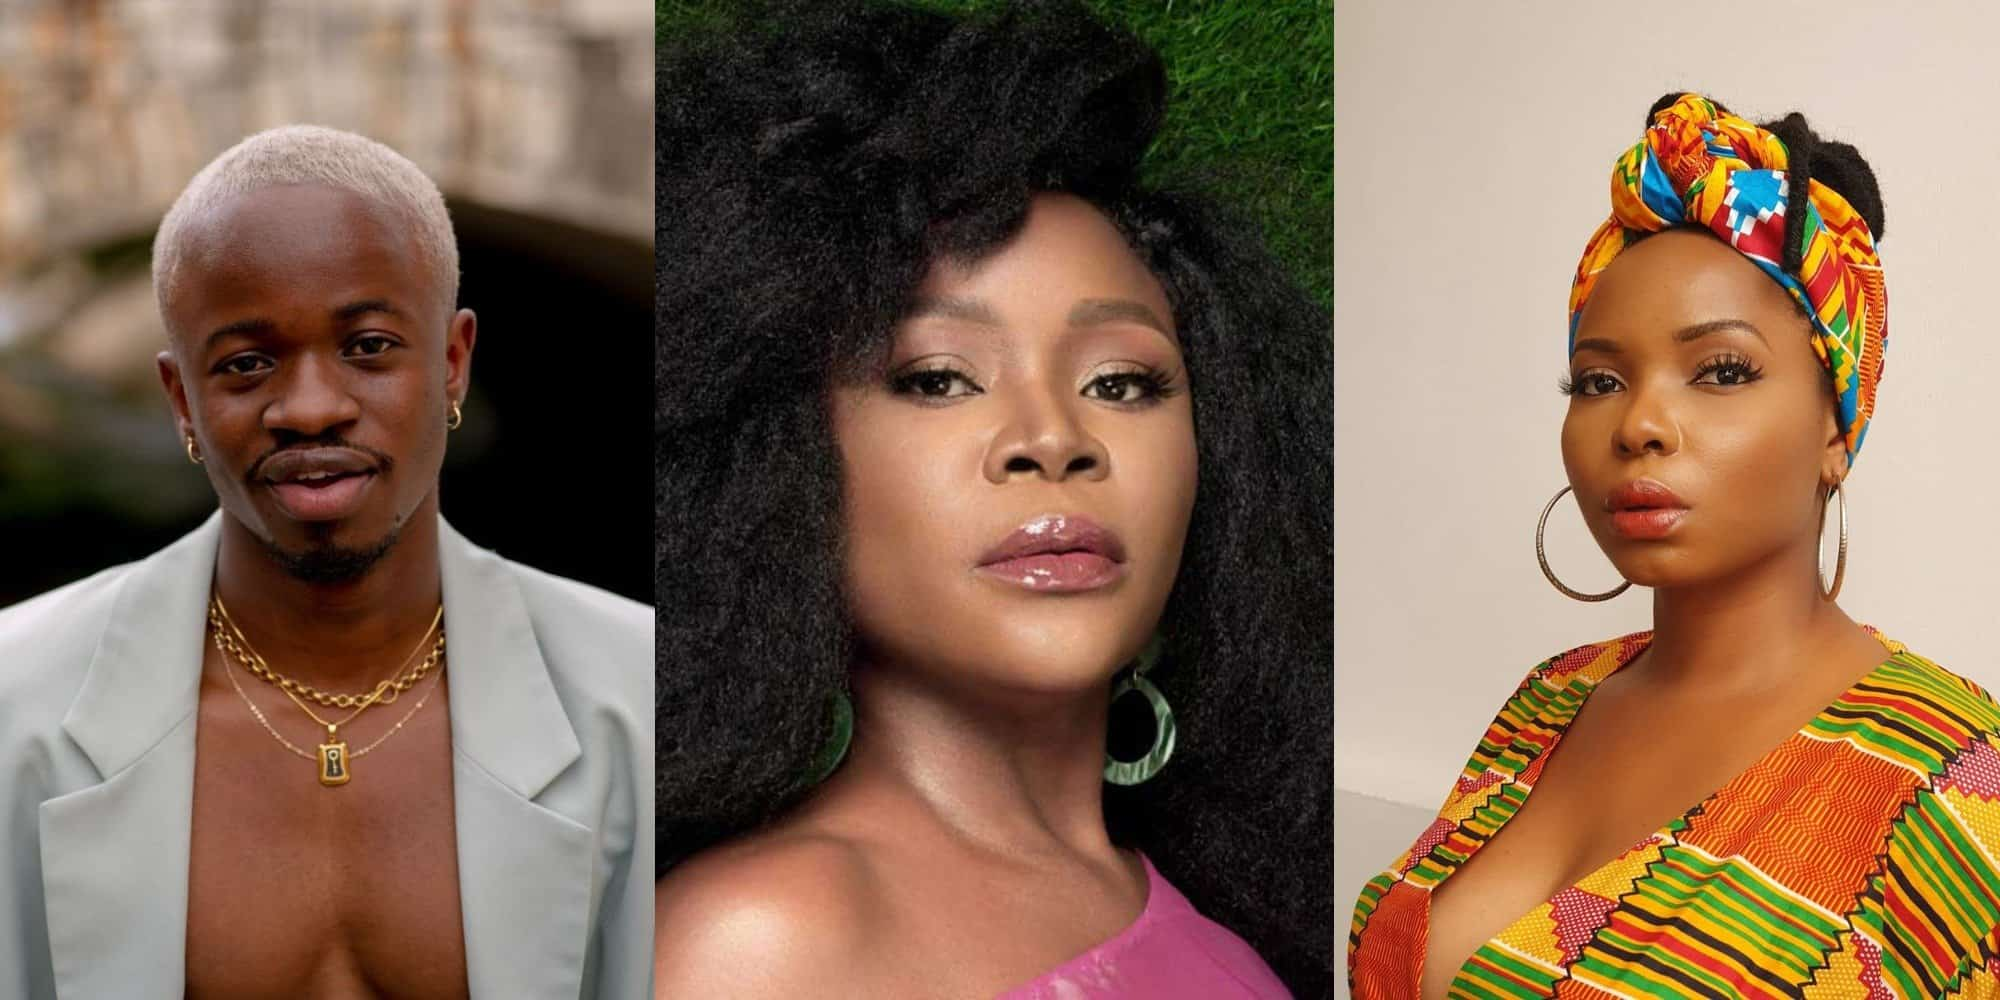 Songs of the Day: New Music From Mannywellz, Omawumi, Yemi Alade & More